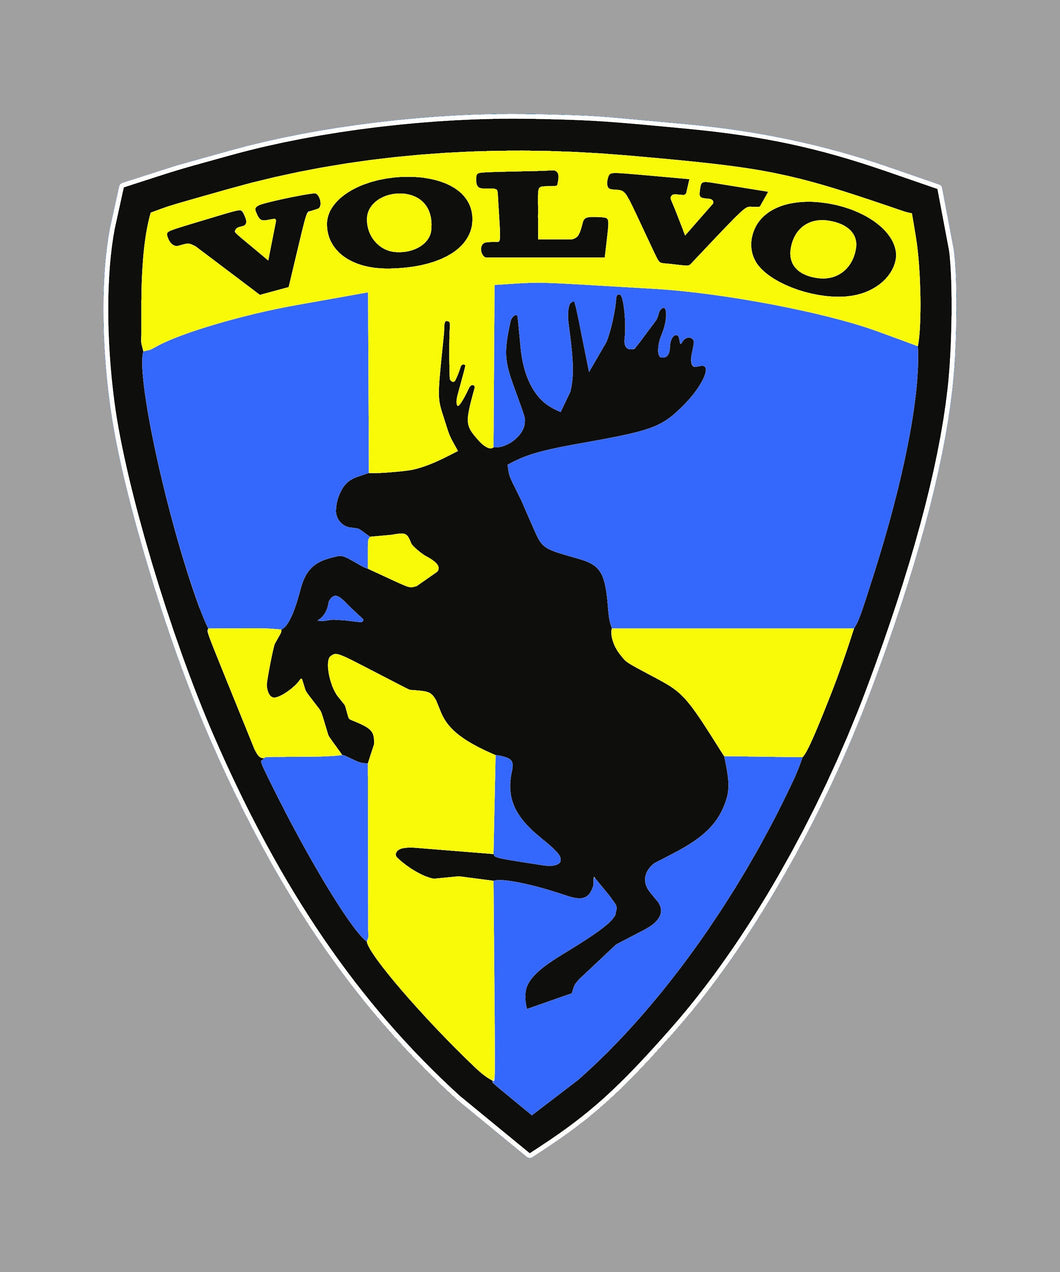 Swedish volvo moose - Tarrastore